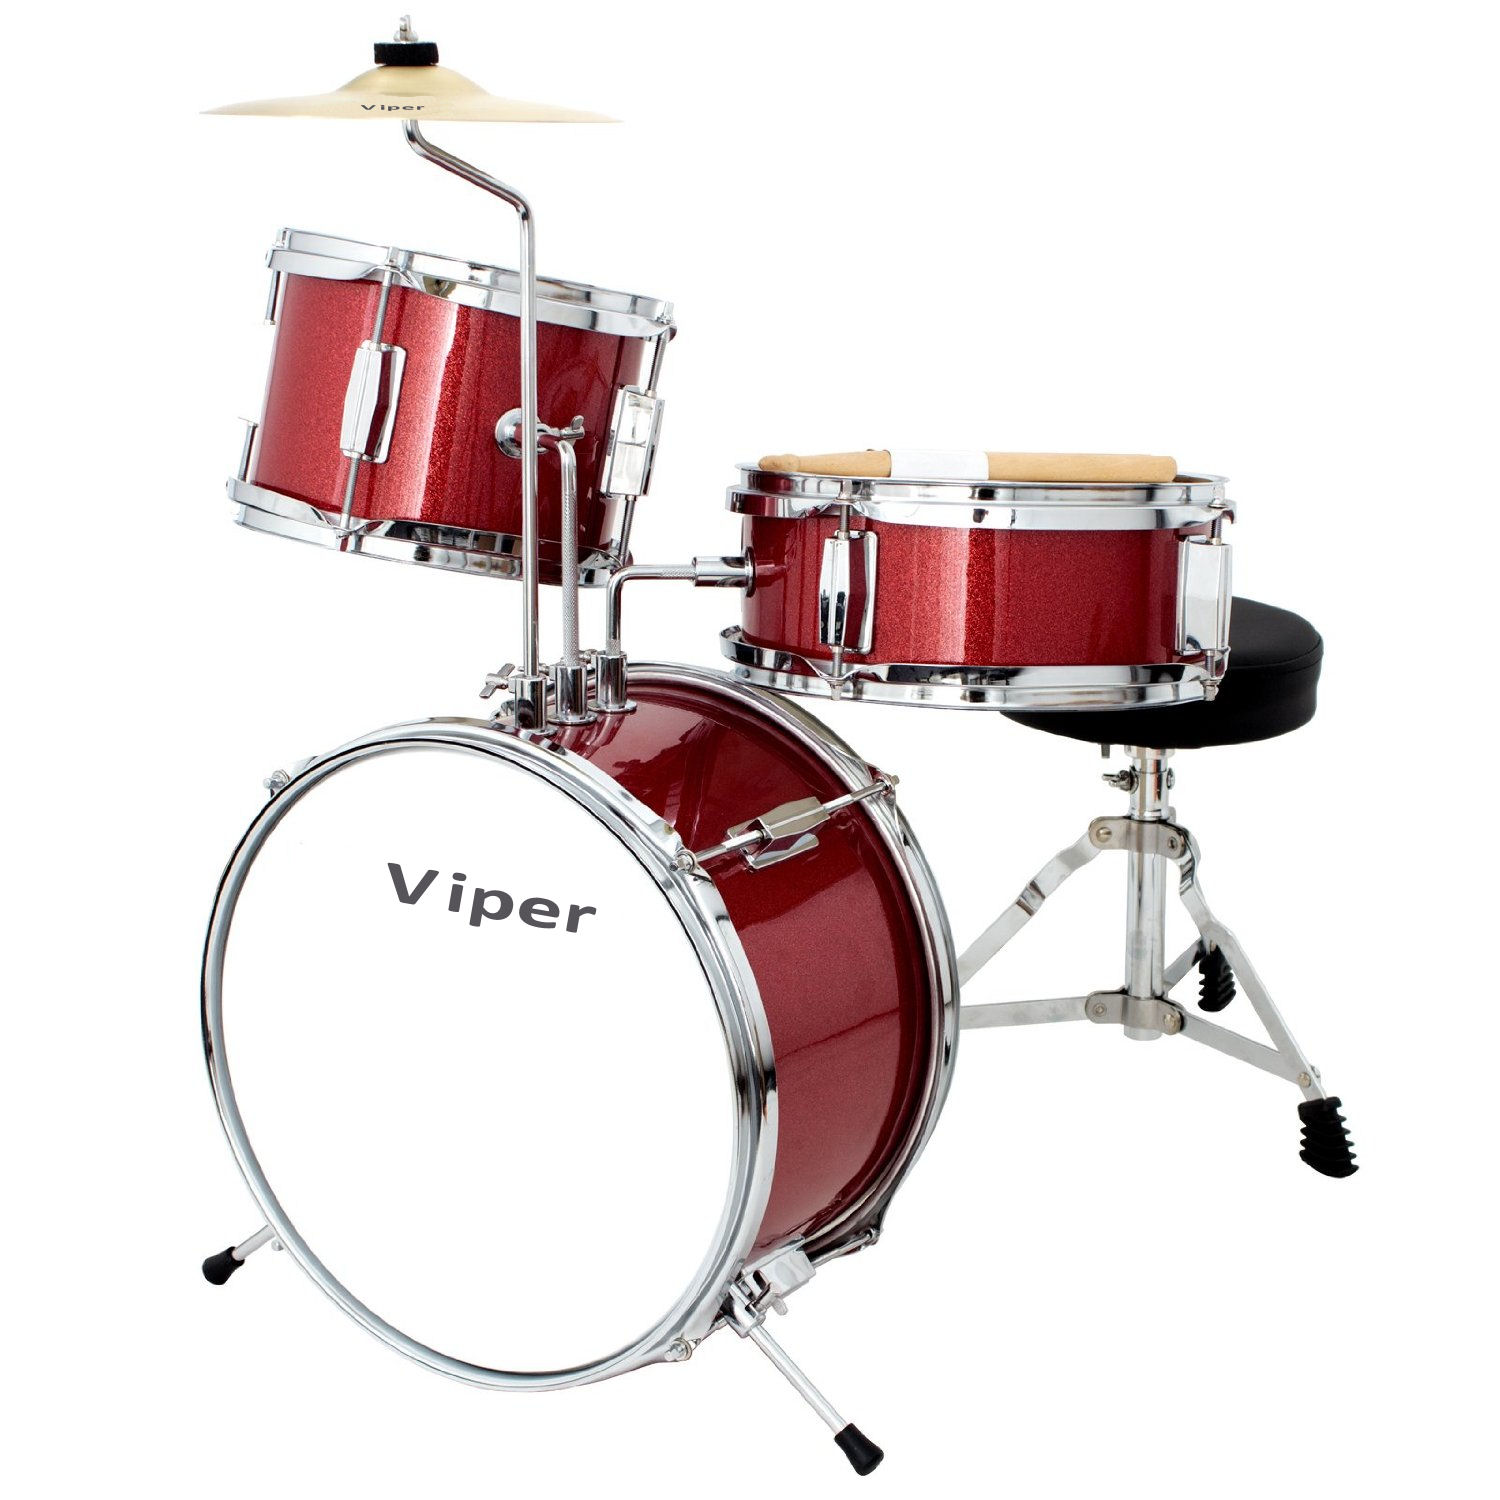 VIPER JR. 20 Child's DRUM SET METALLIC RED